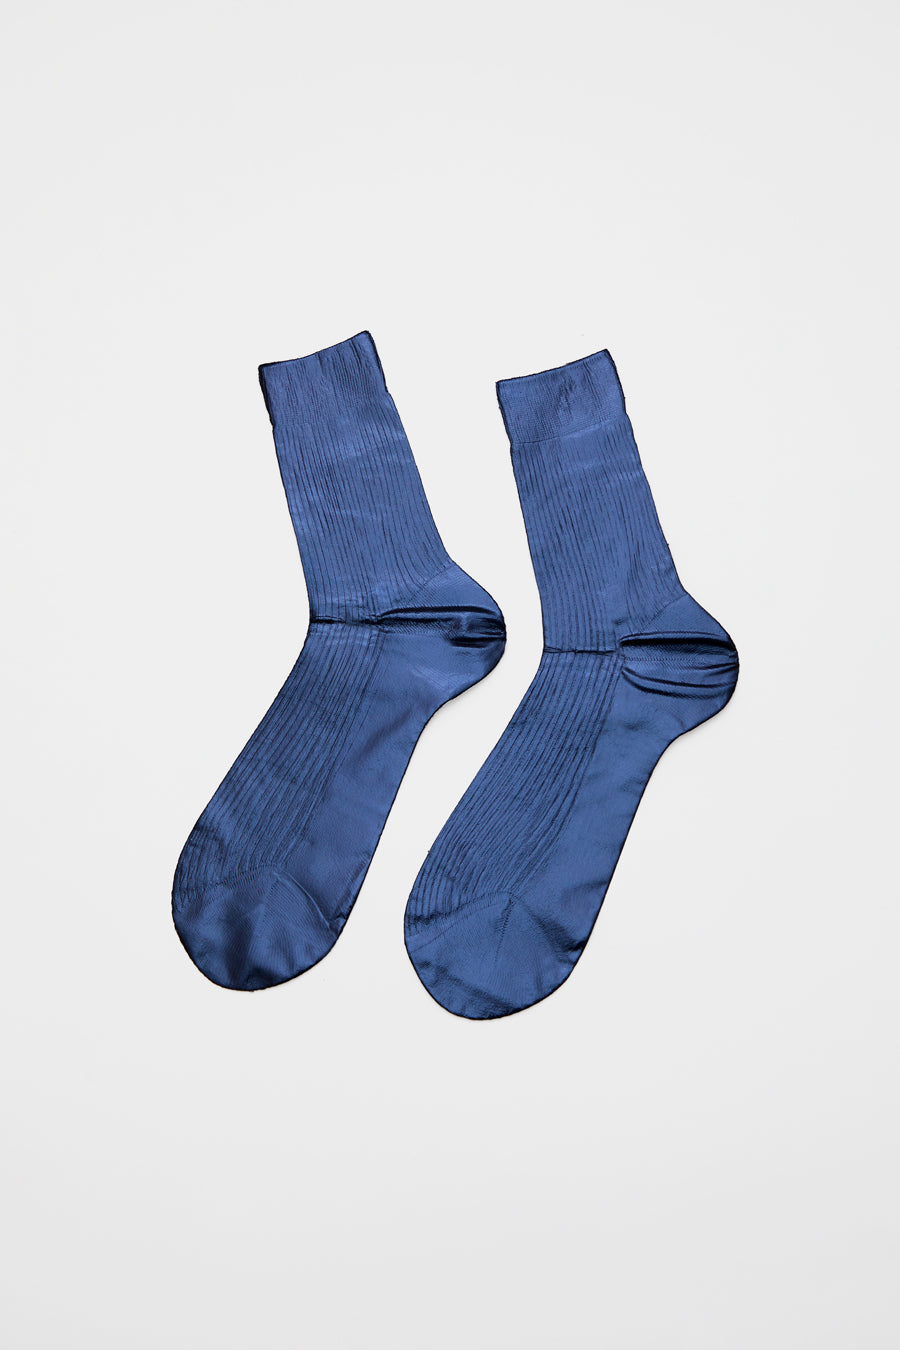 Maria La Rosa Ribbed Laminated Sock in Blue and Navy